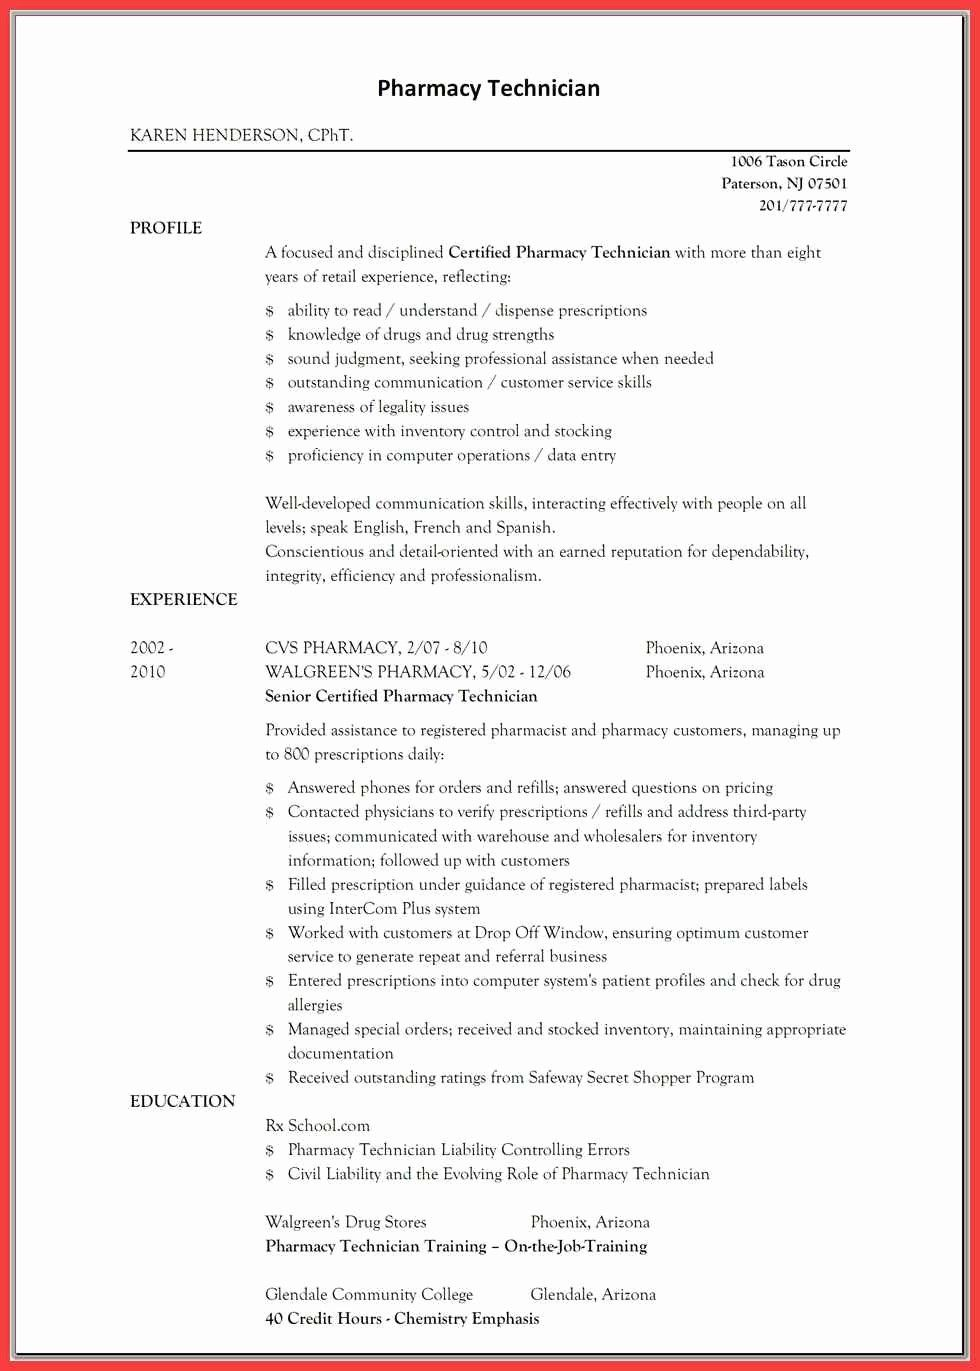 50 New Pharmacy Technician Resume Template in 2020 (With